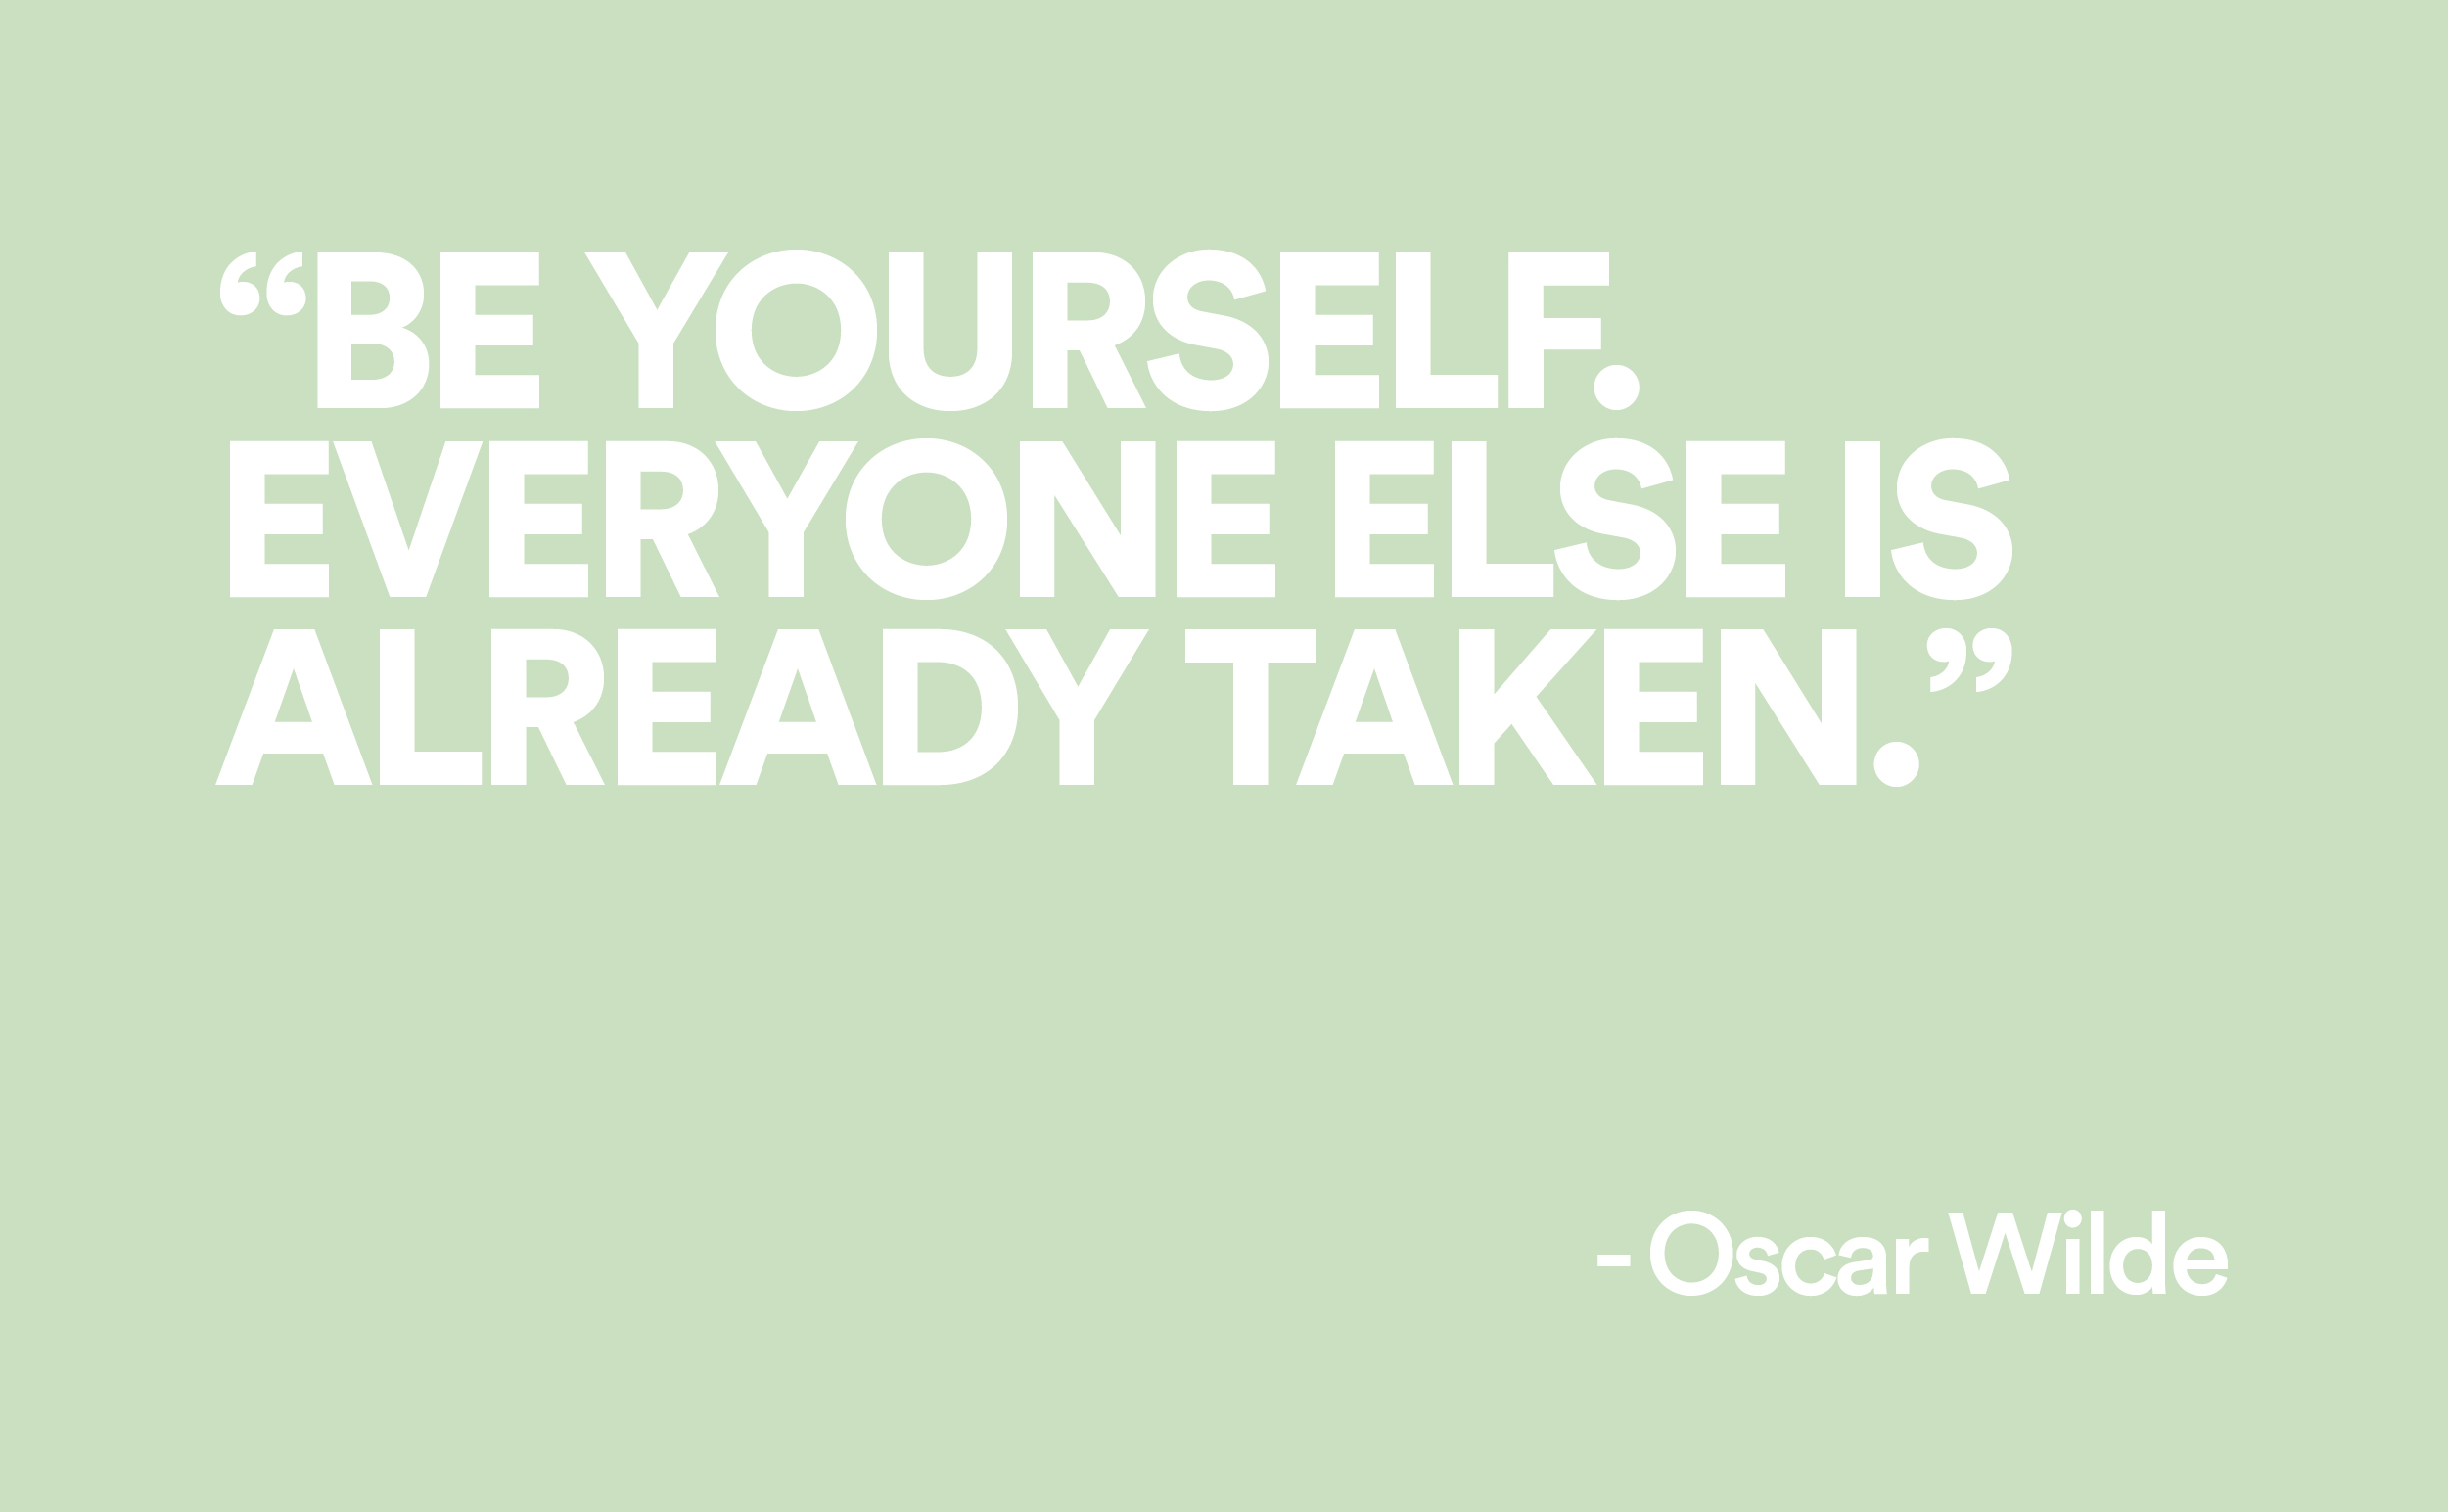 oscar wilde quote on green background brands to life